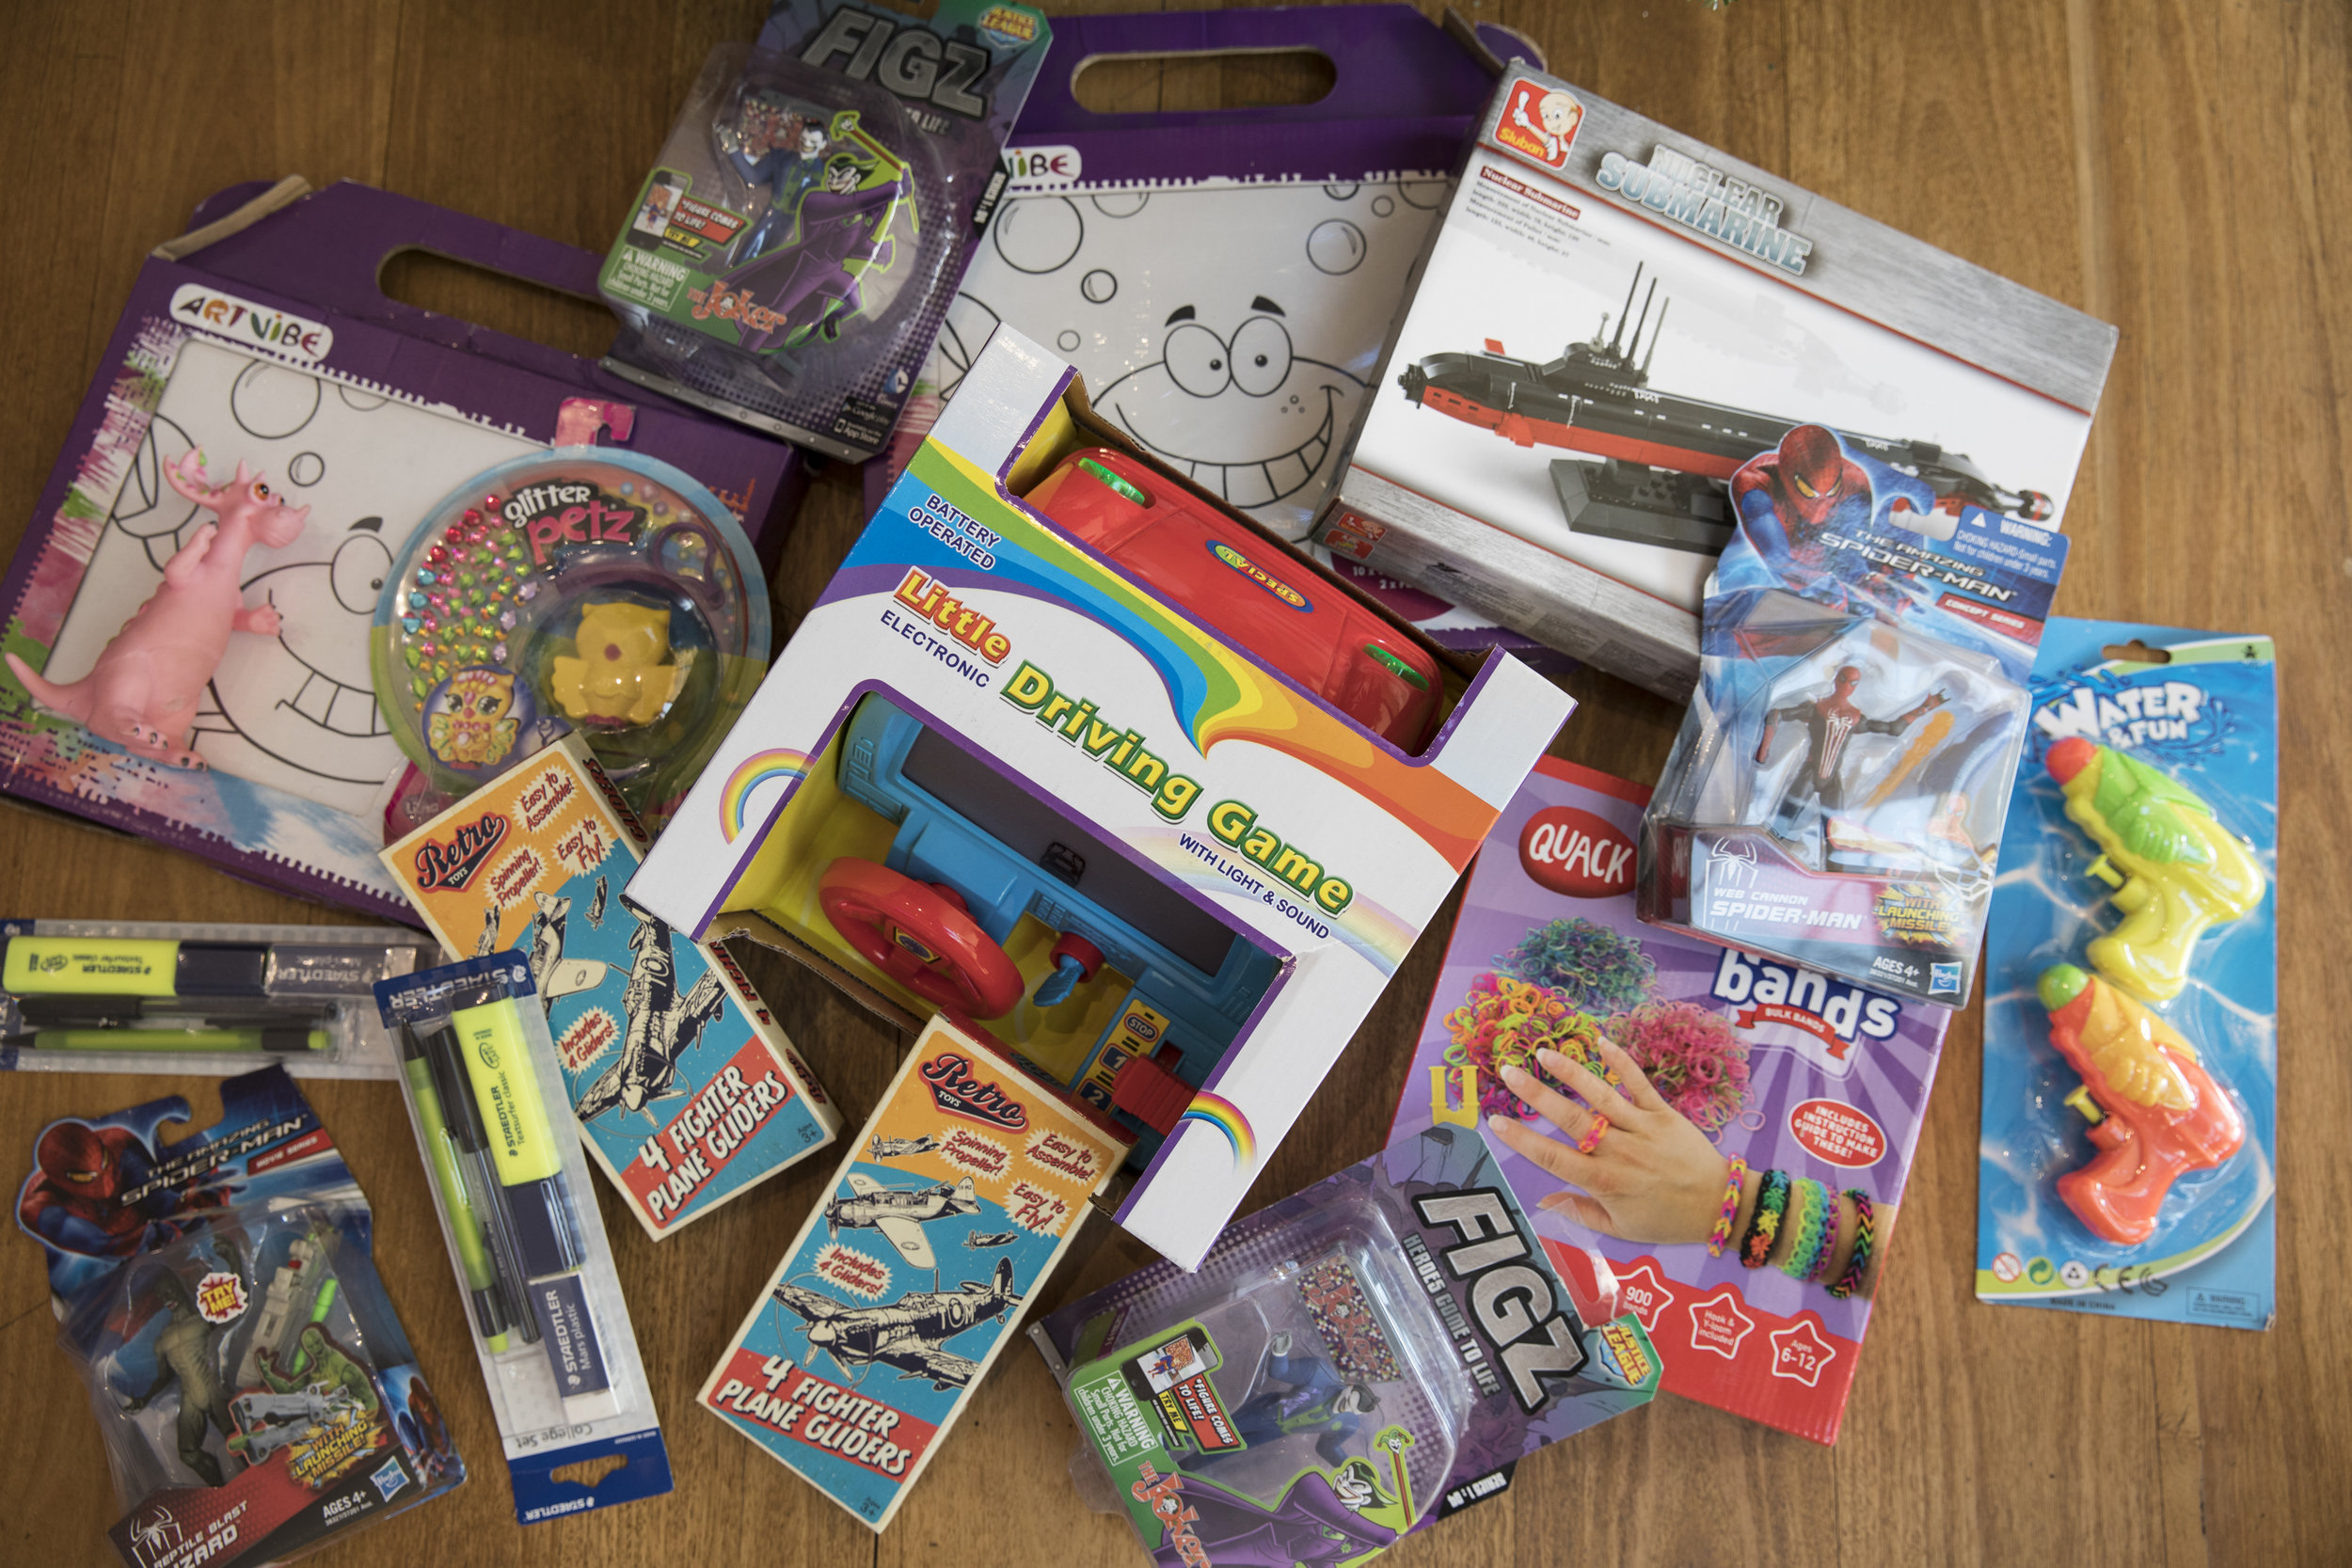 Spit Junction Newsagency - A swag of gifts (just a few of them pictured here) for younger and older children, including stationary and pen sets, action figures and art supplies valued at more than $250.